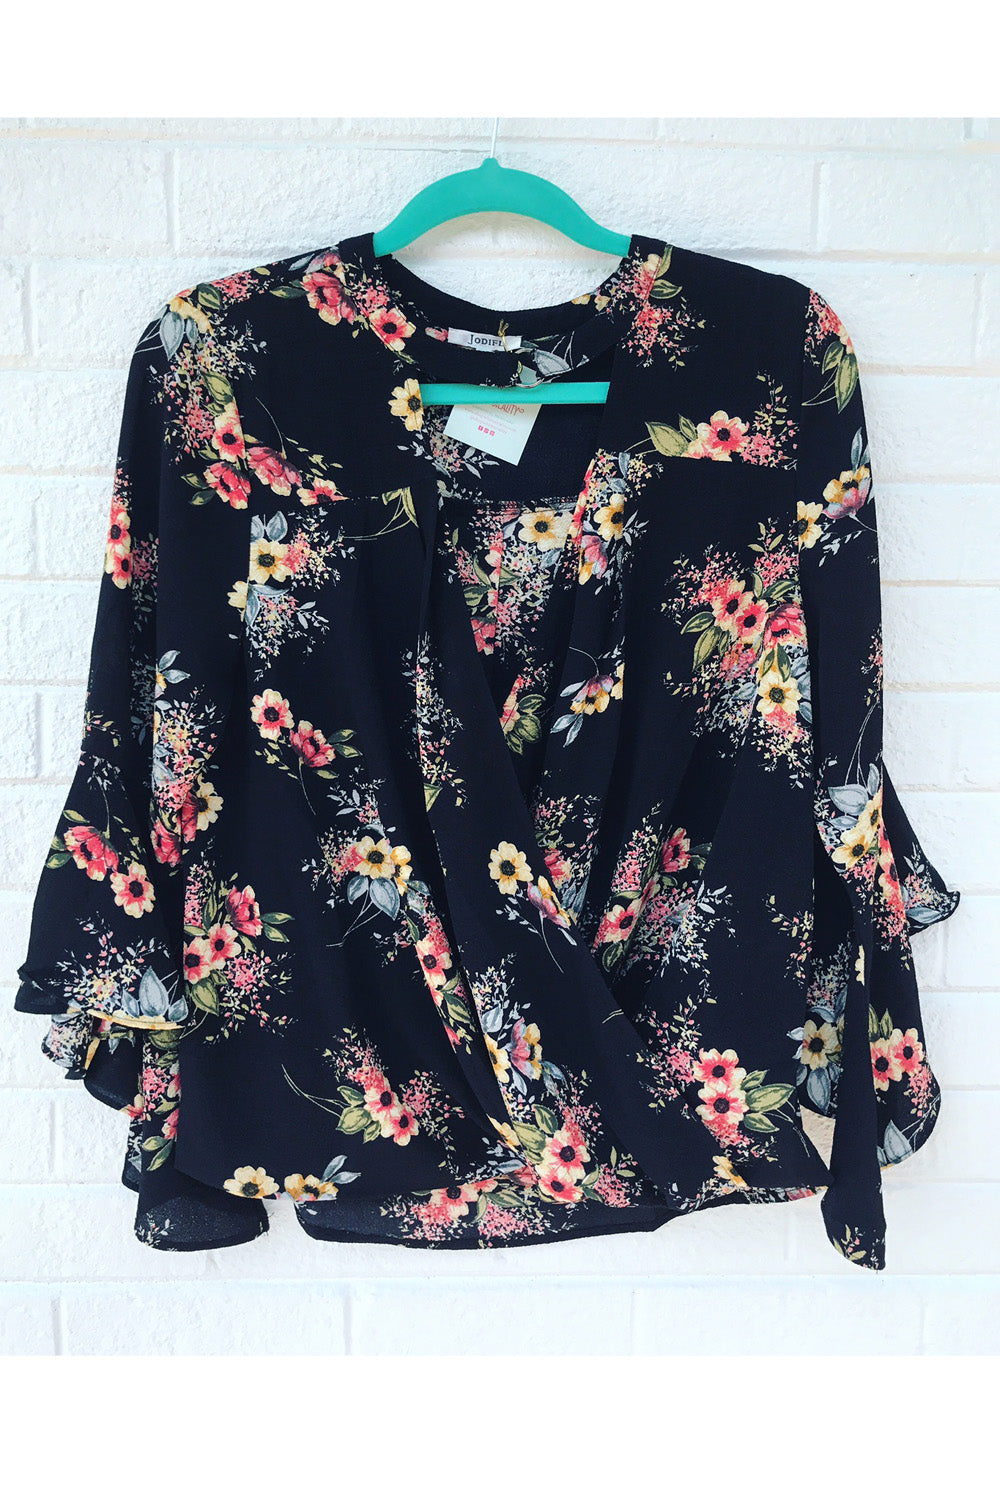 Mix Flowy Top - Black